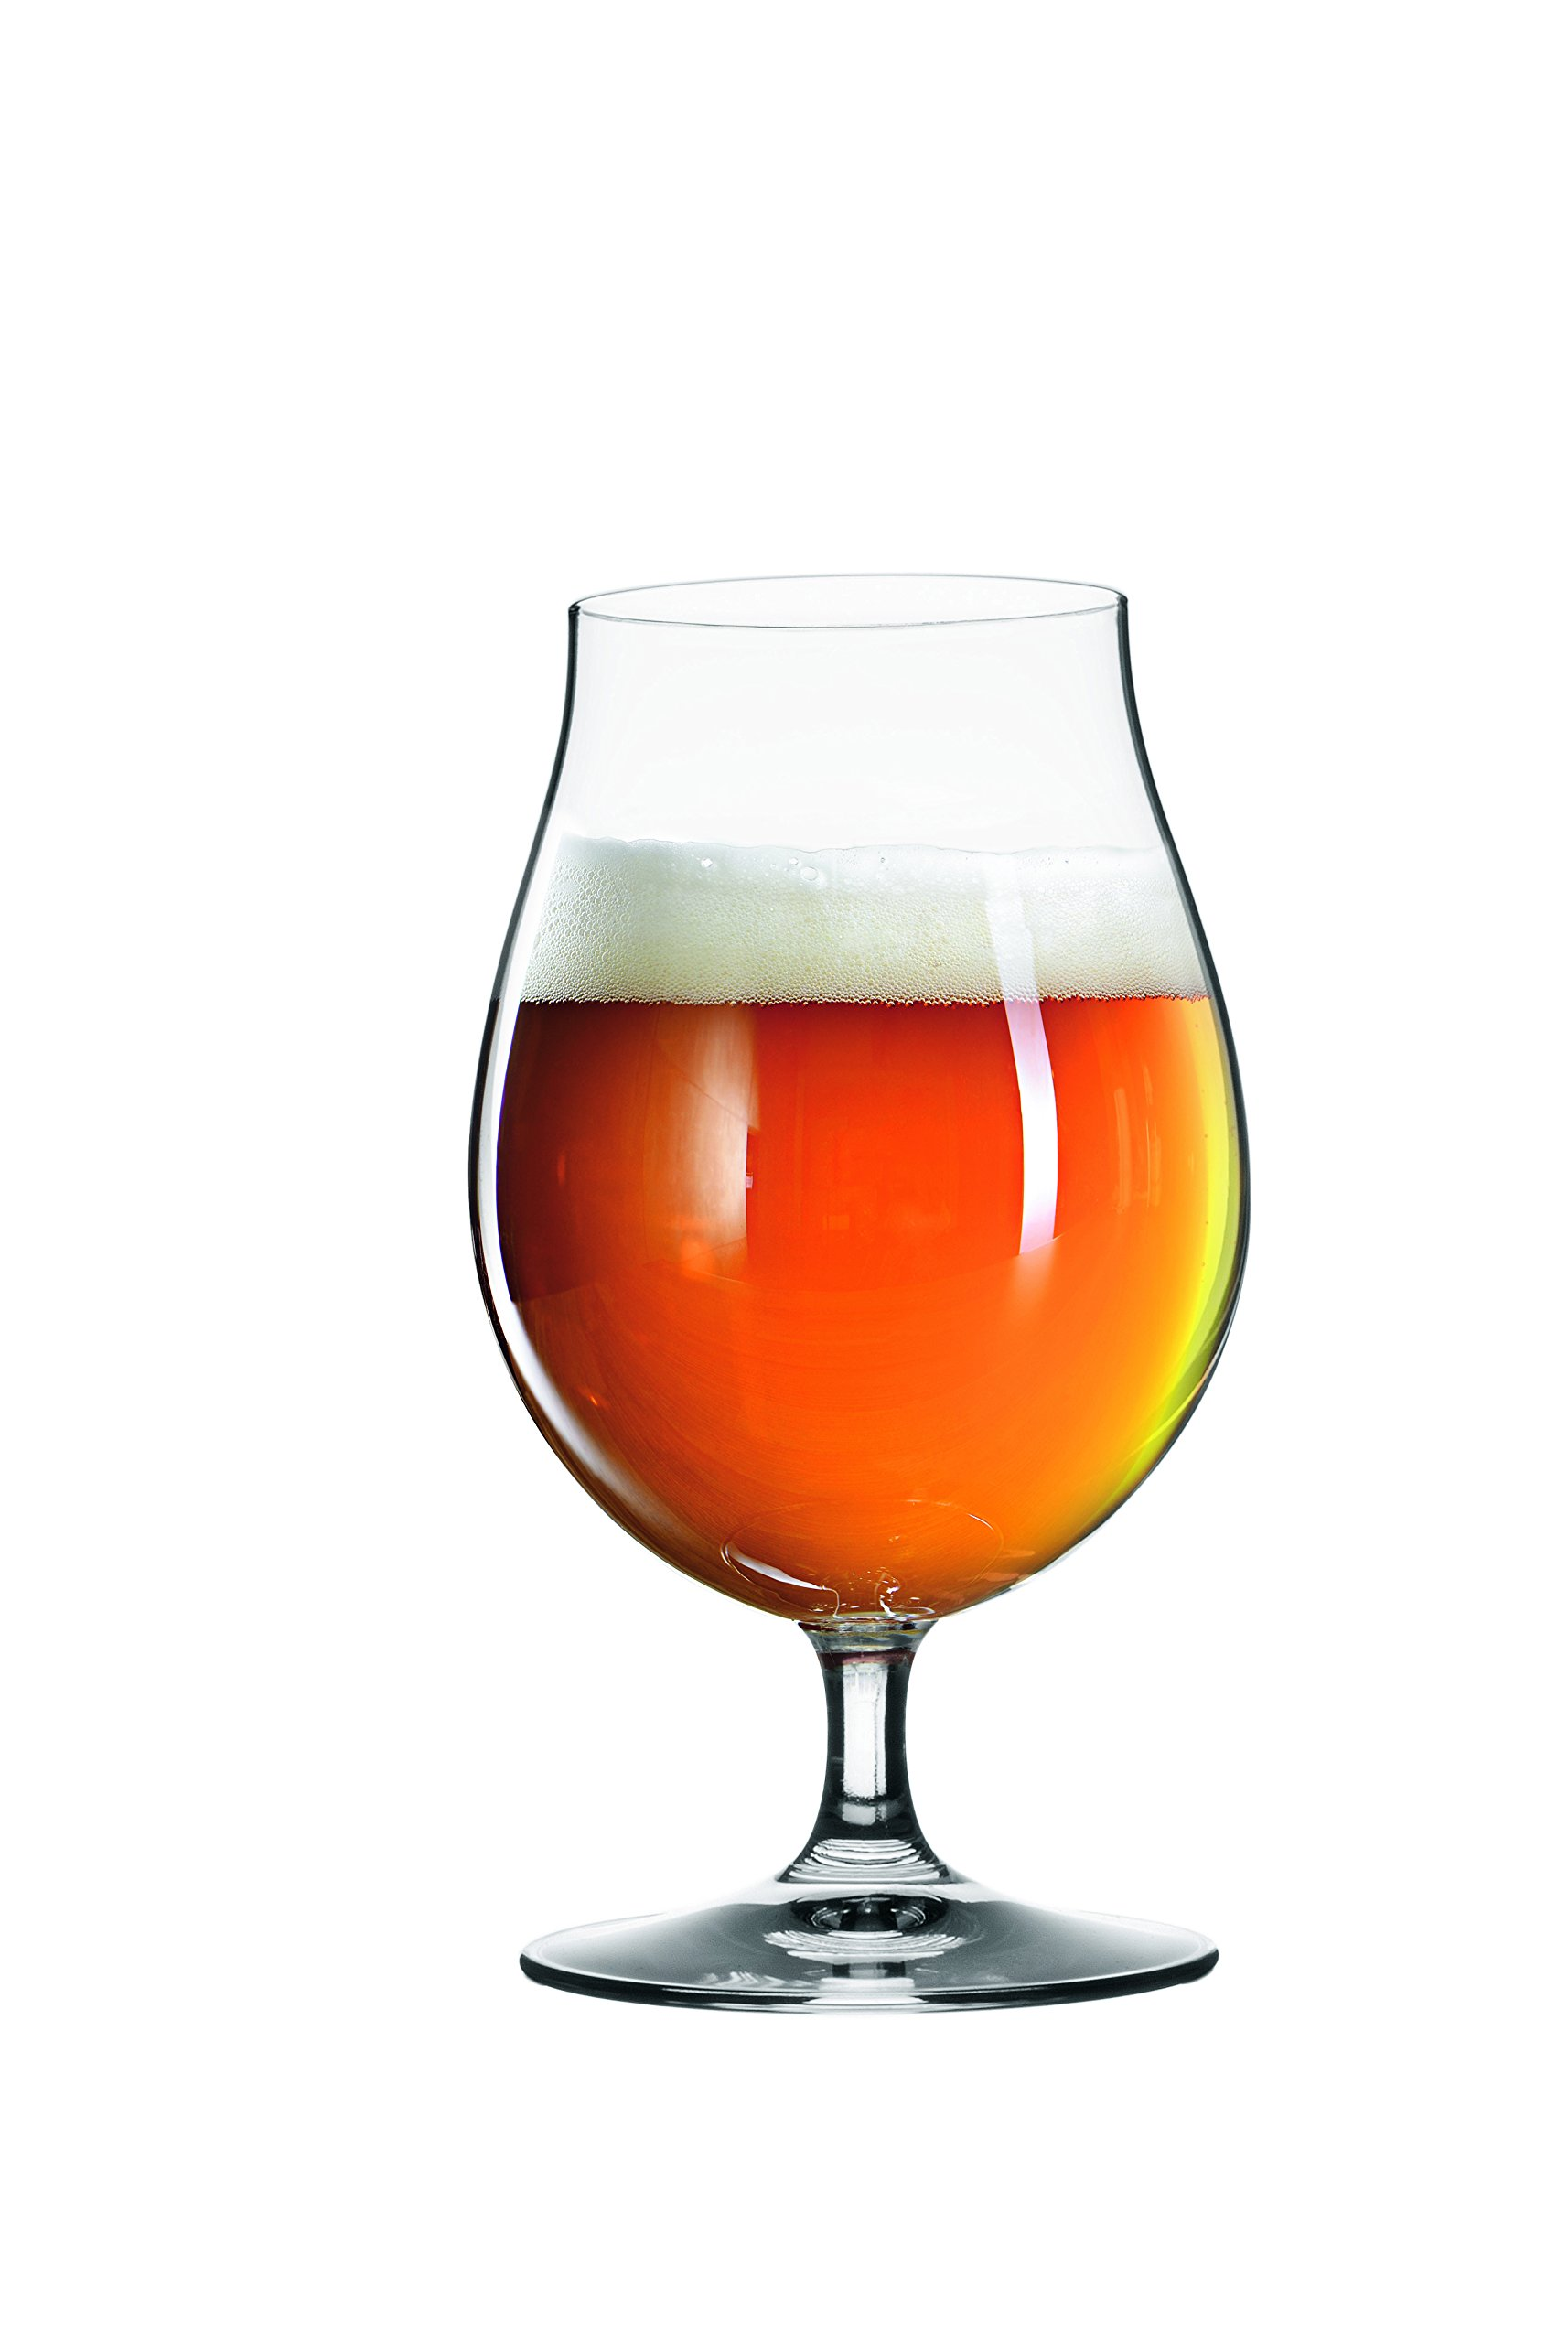 Spiegelau - Tulip Classics Beer Glasses - (Set of 4, 15.5 oz.) by Spiegelau (Image #2)